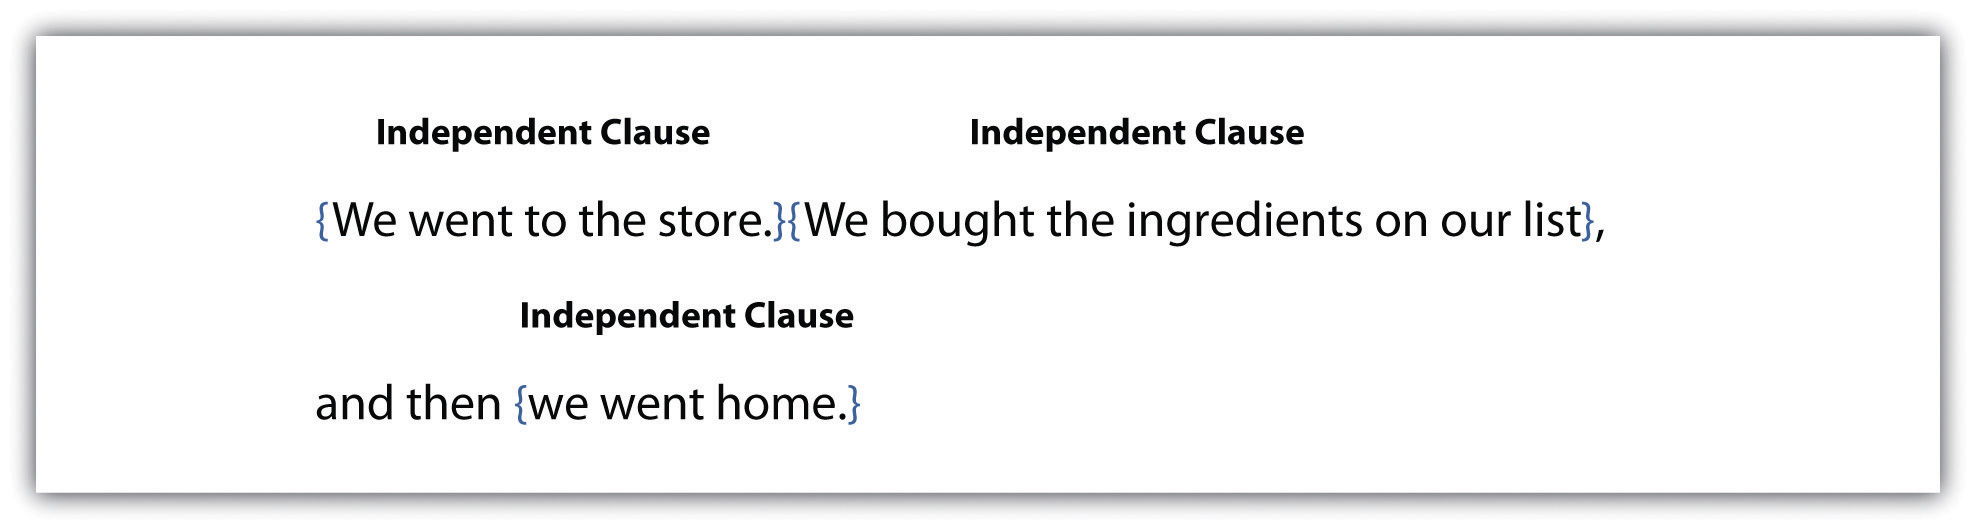 Independent Clause: We went to the store, we bought the ingredients on our list, and then we went home